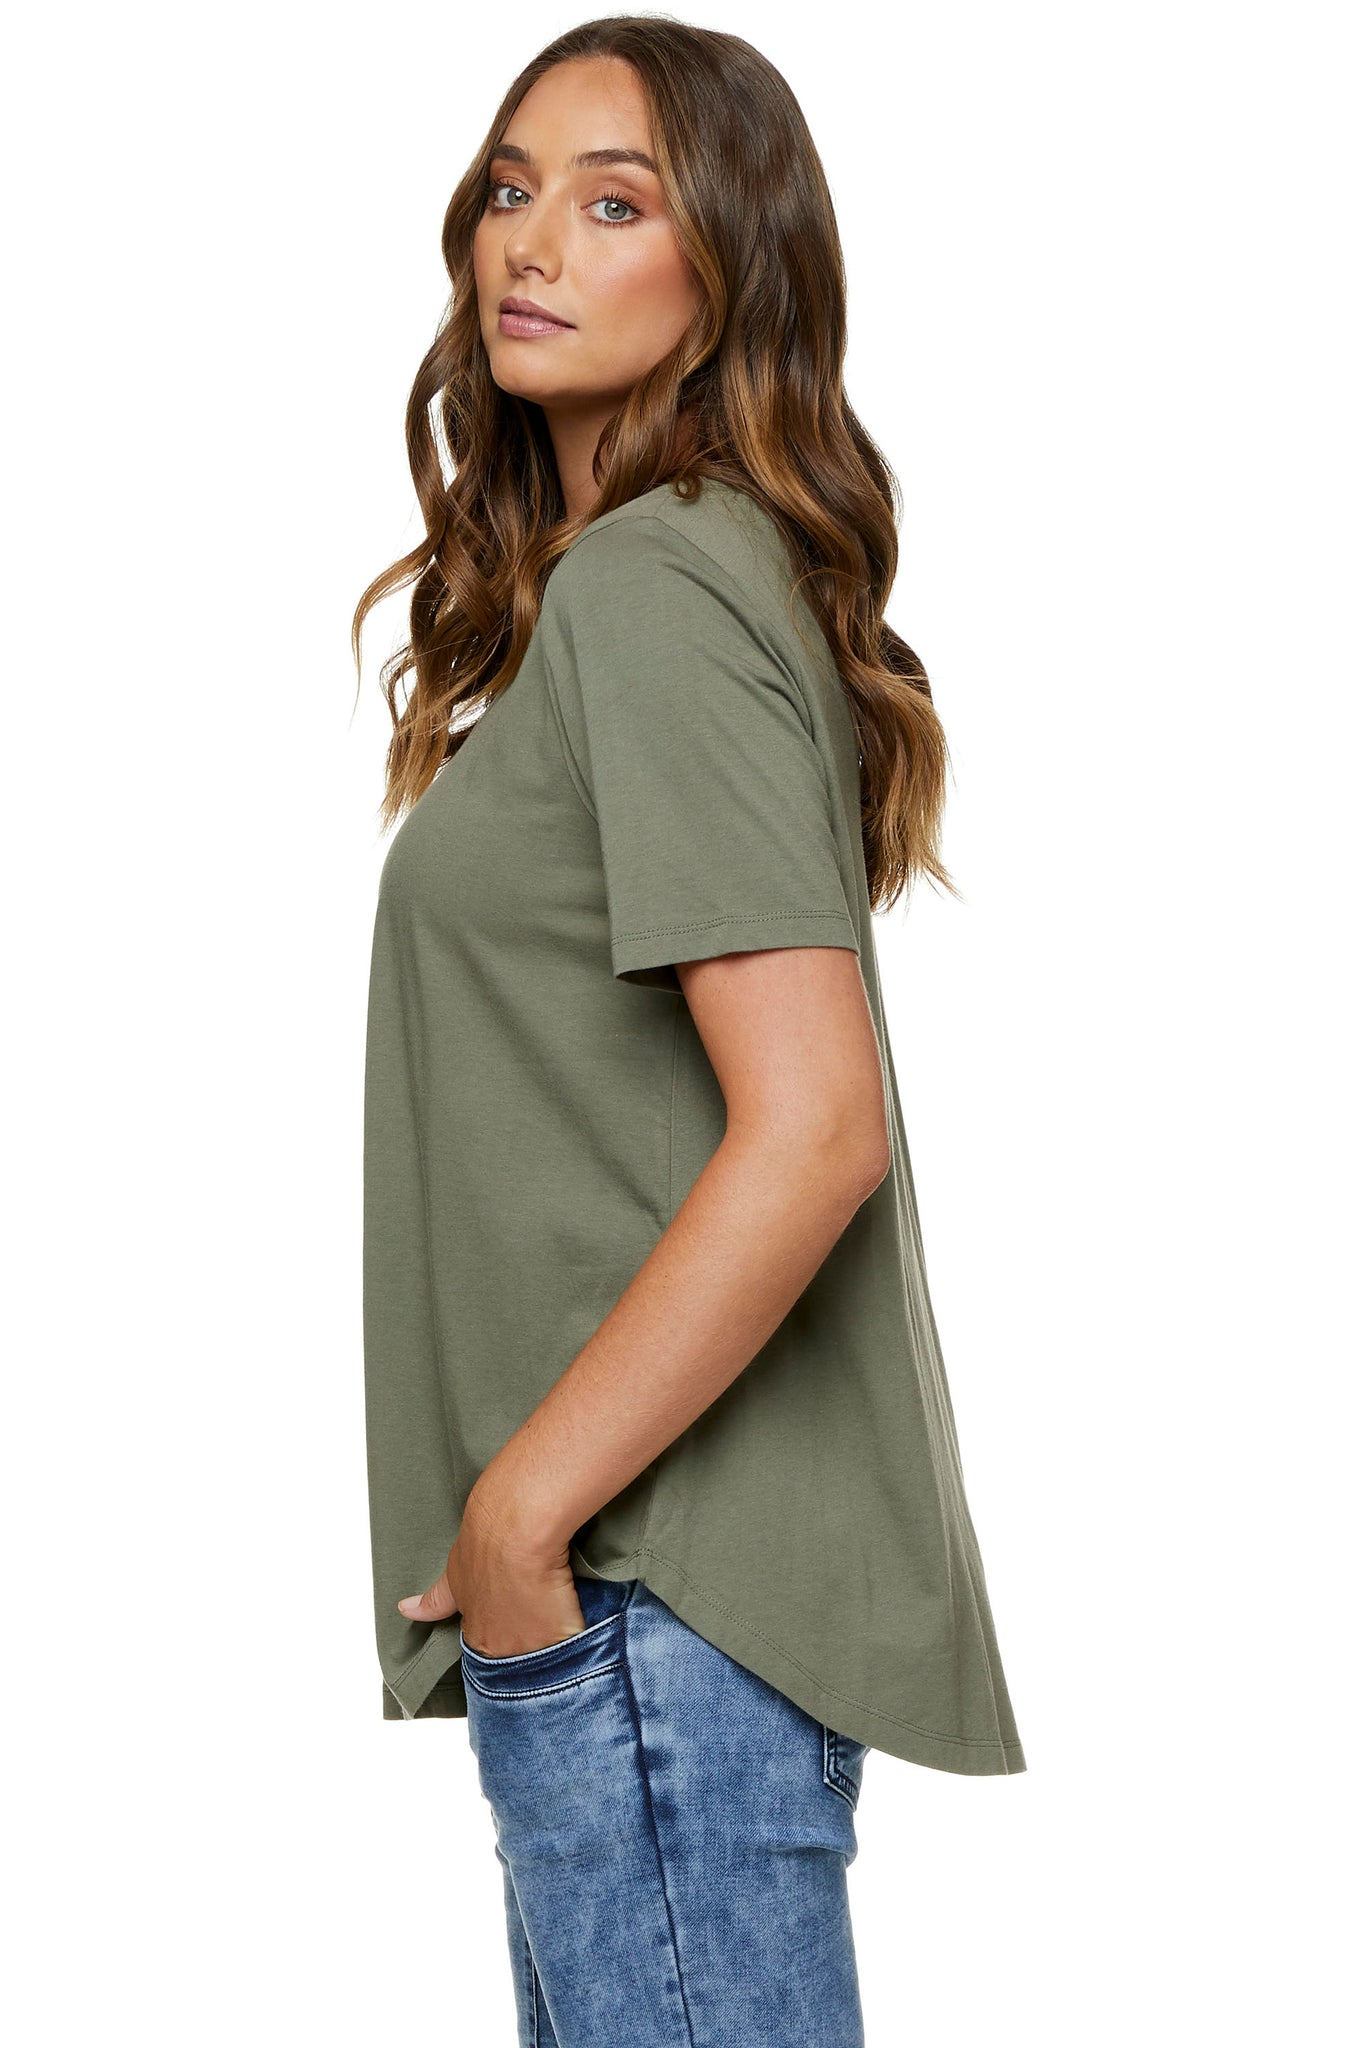 Khaki maternity t-shirt - Maternity top 6